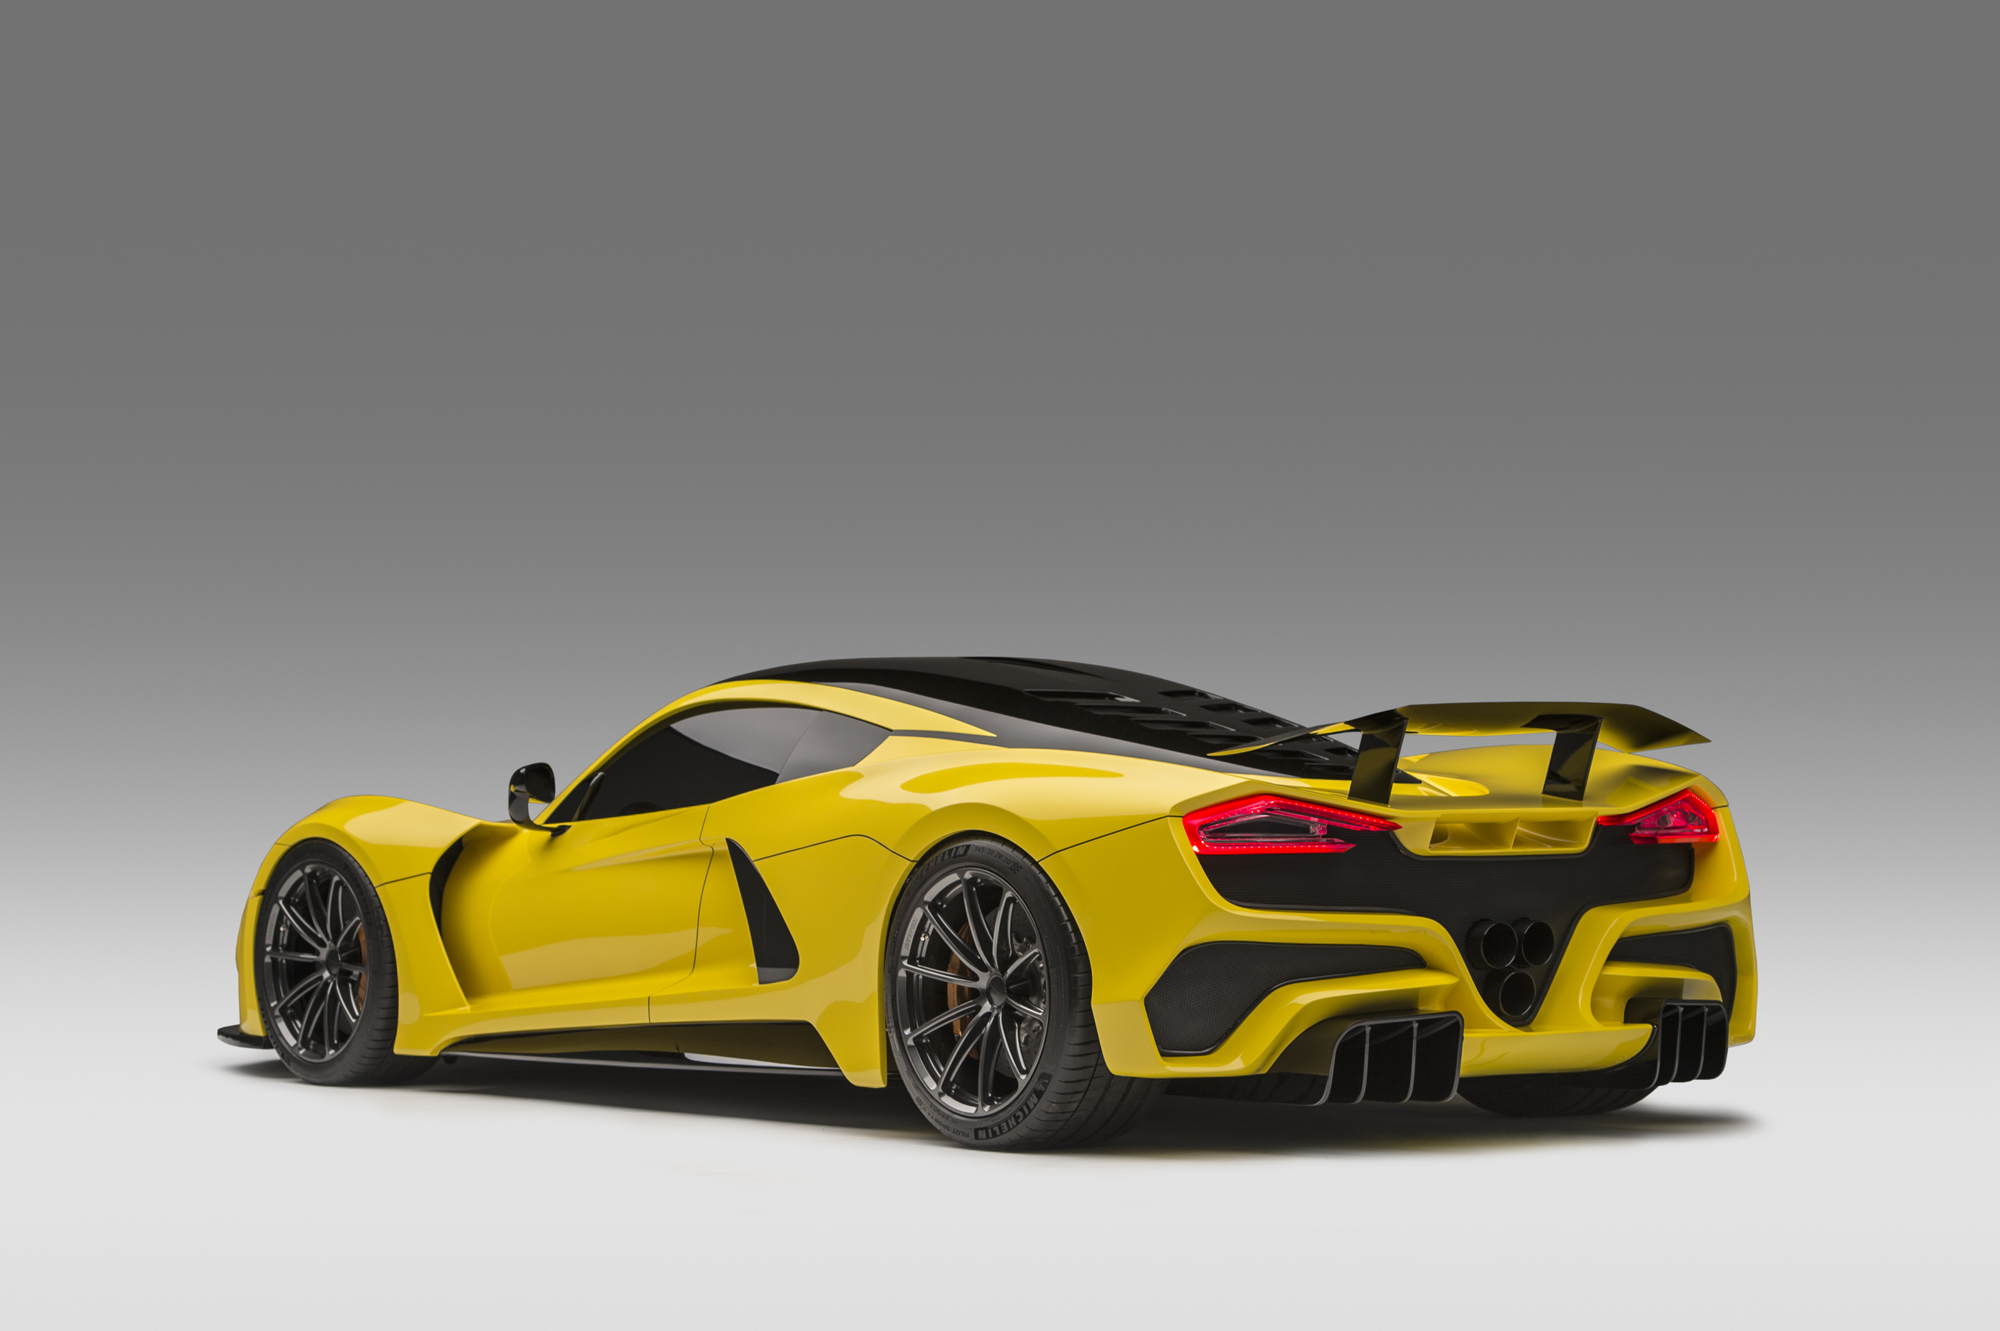 VenomGT.com | The Official Website of the Hennessey Venom GT